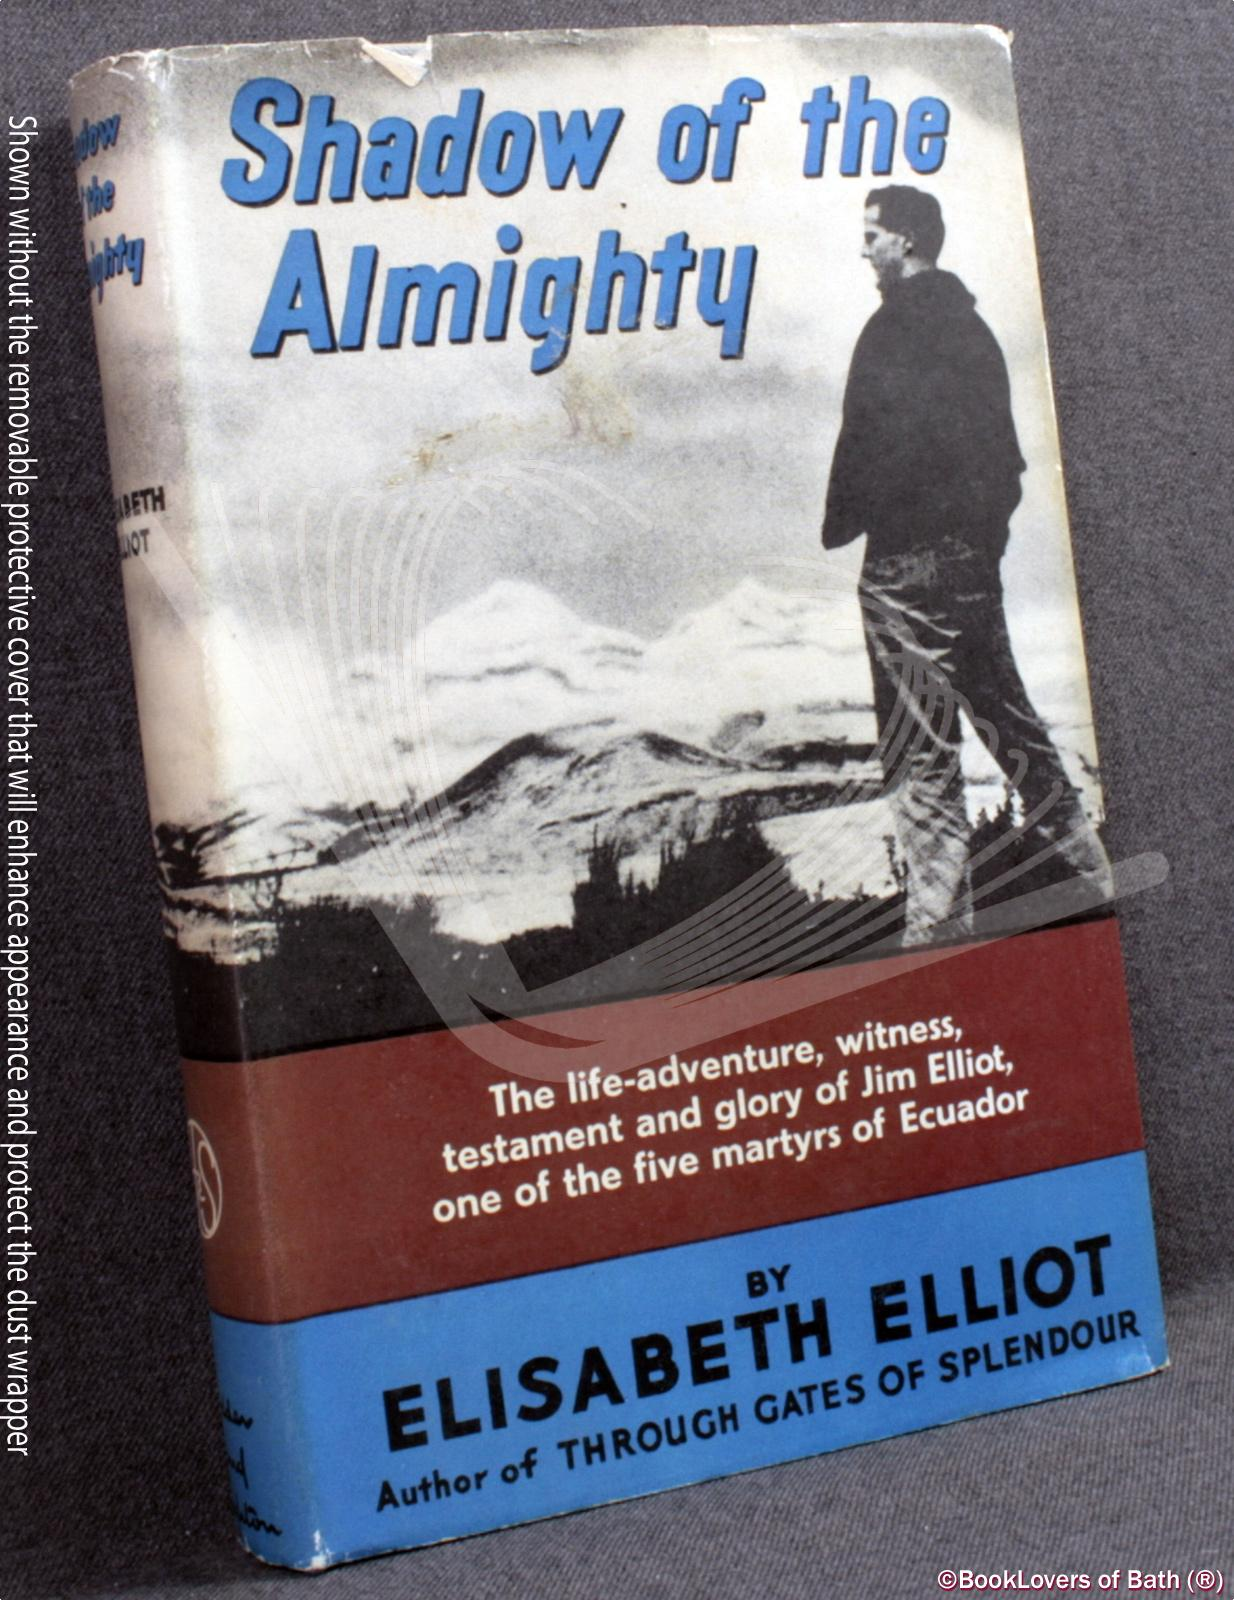 Shadow of the Almighty: The Life and Testament of Jim Elliot - Elisabeth Elliot